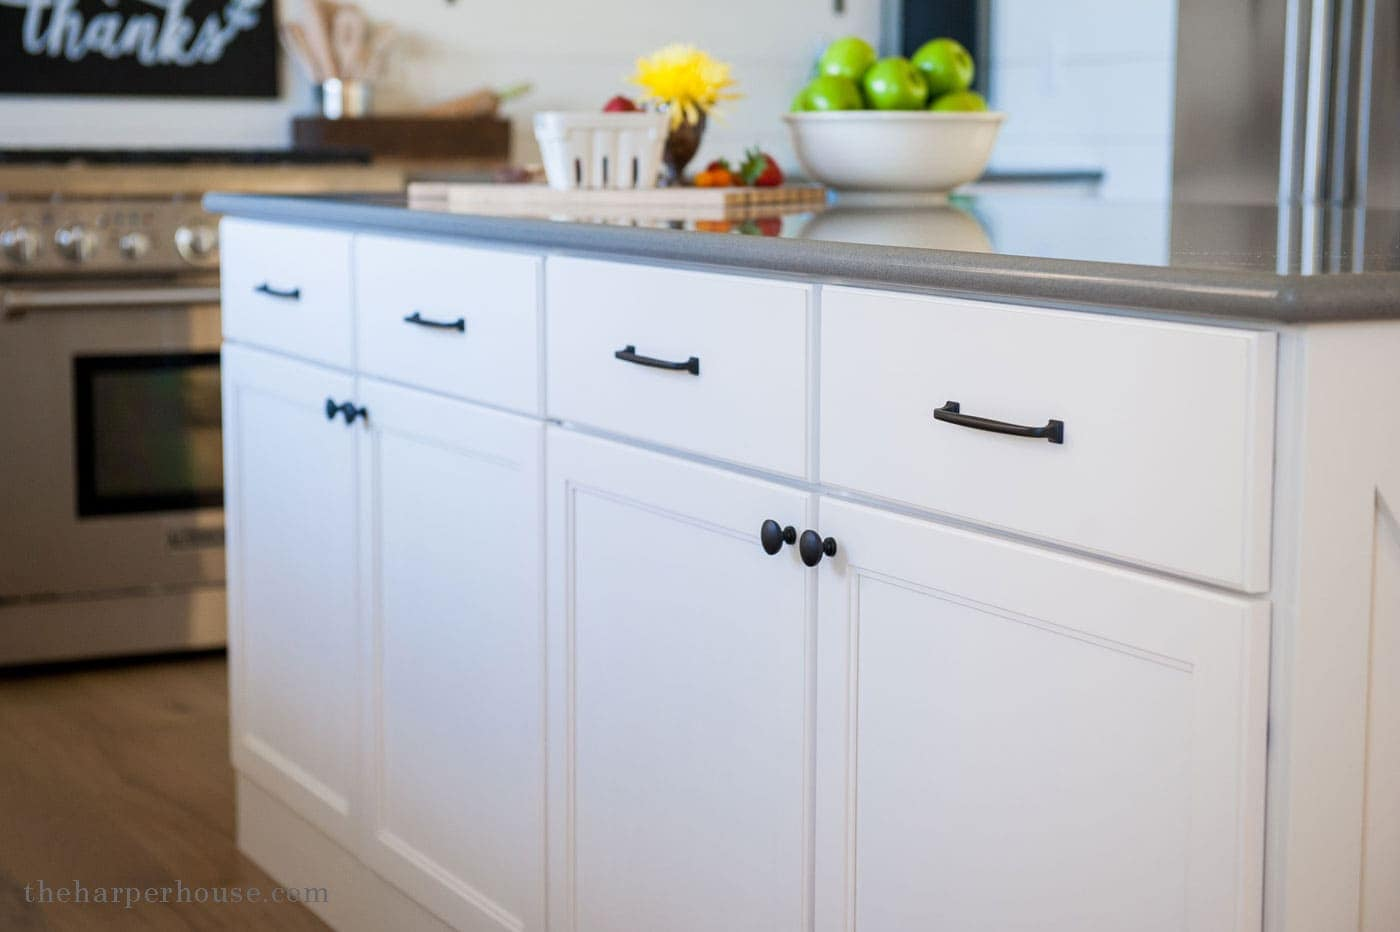 Kitchen Hardware: 27 Budget Friendly Options | The Harper House